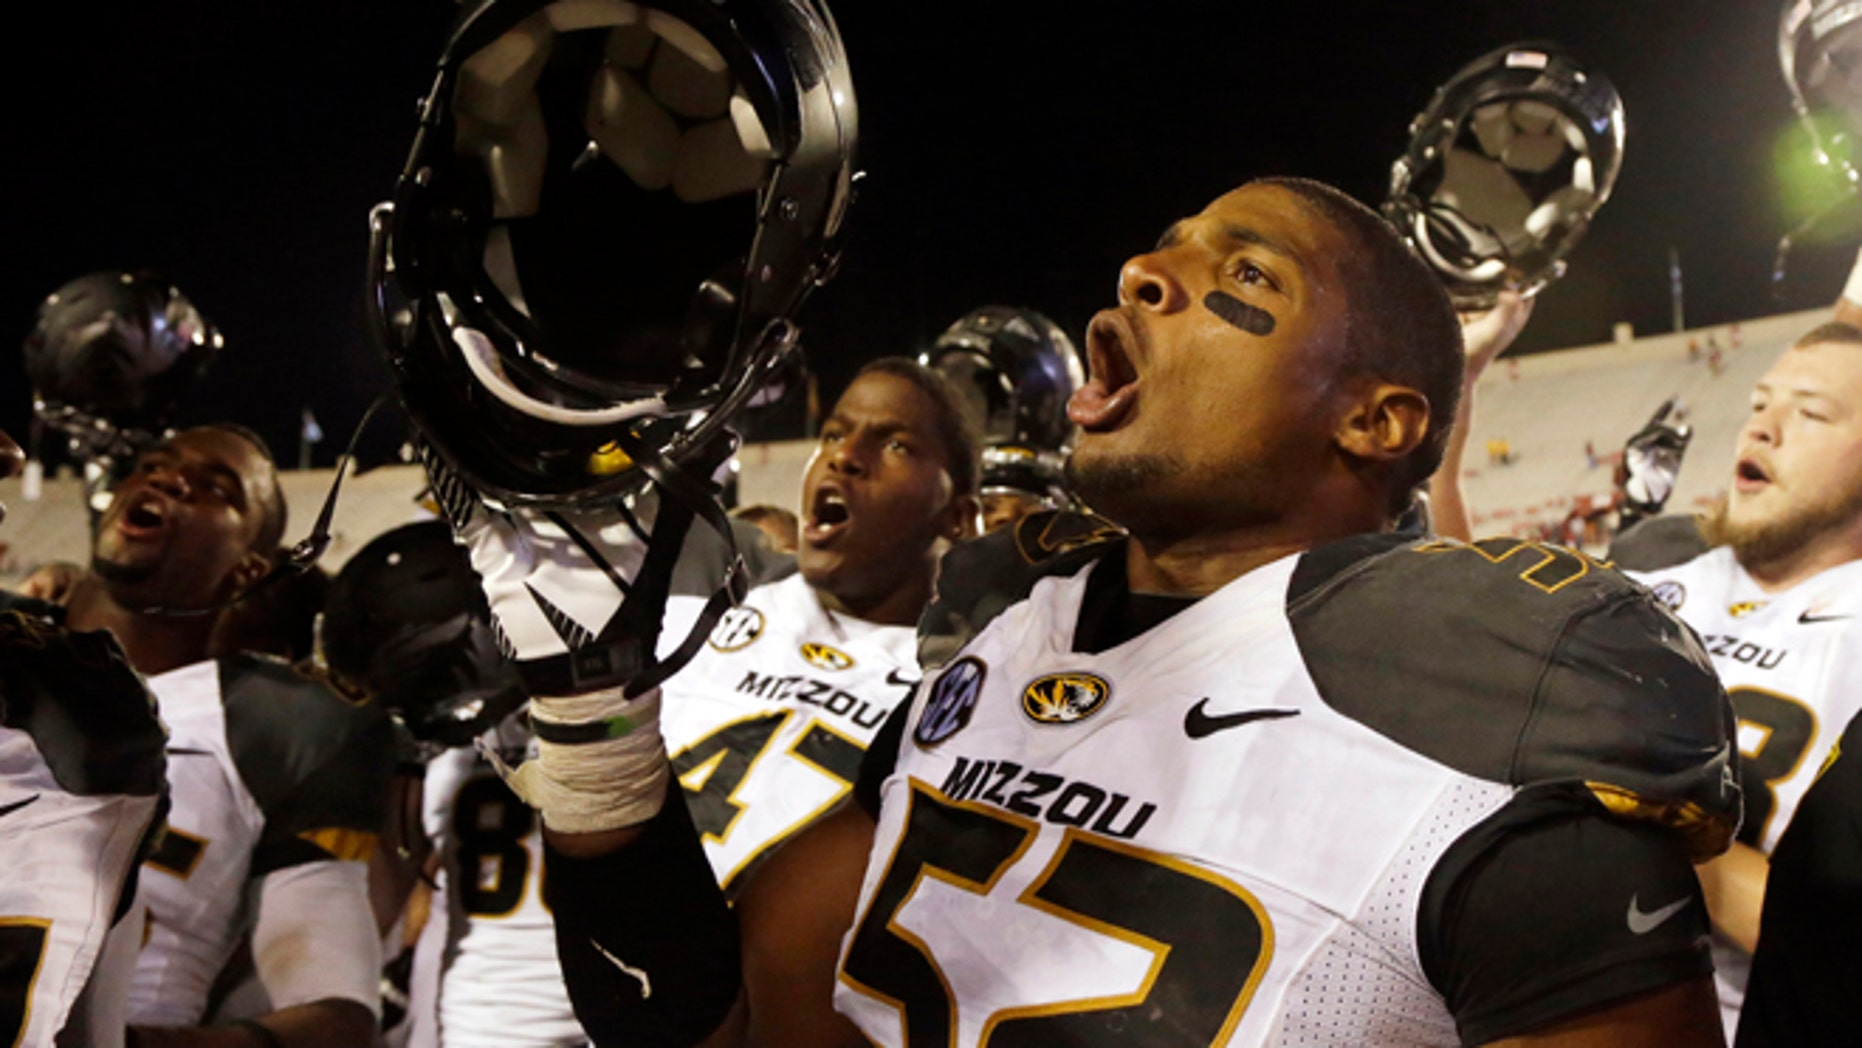 FILE - In this Sept. 21, 2013, file photo, Missouri's Michael Sam (52) sings the school song after Missouri defeated Indiana in an NCAA college football game in Bloomington, Ind. The All-American athlete says he is gay, and the defensive end could become the first openly homosexual player in the NFL. (AP Photo/Darron Cummings, File)